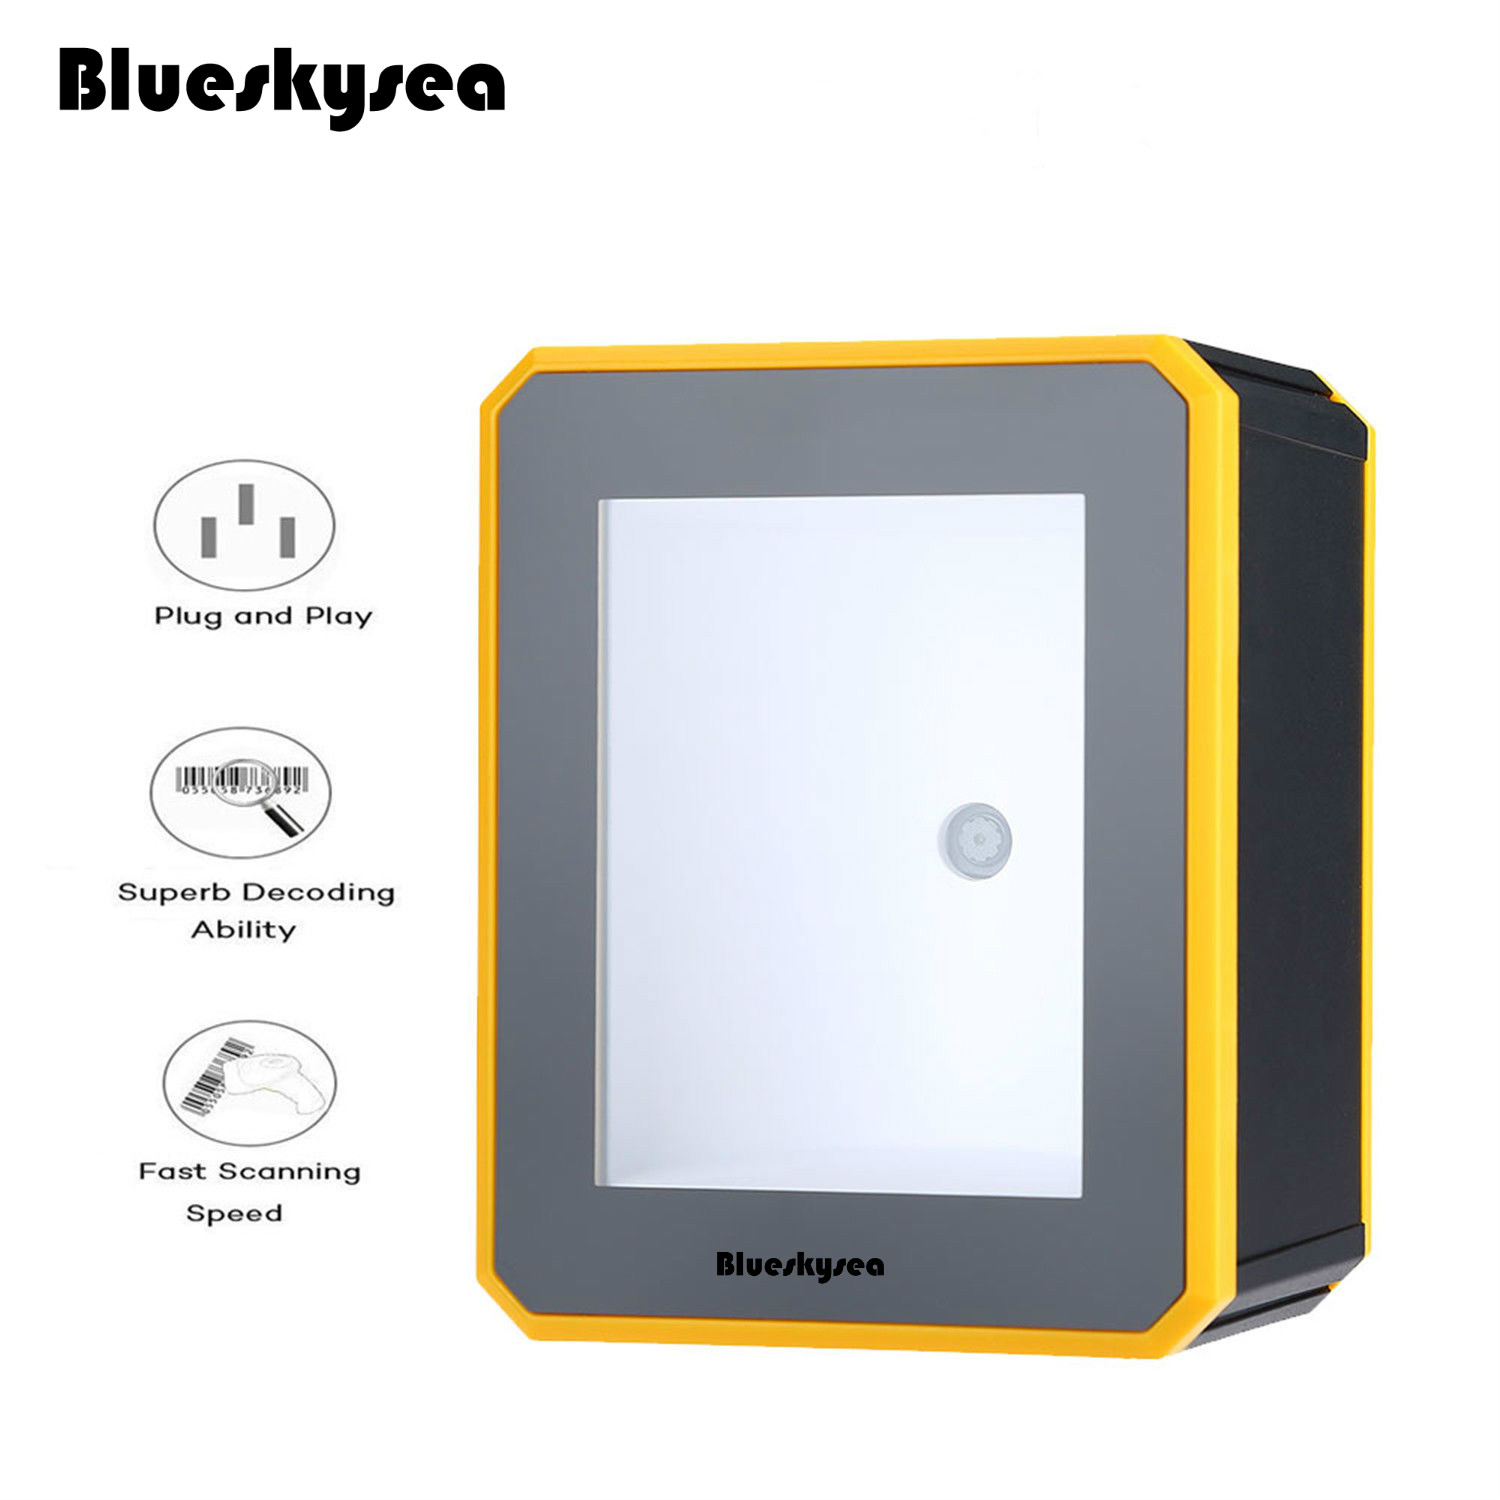 Blueskysea YK-MP2600 1D/2D Platform Barcode Scanner USB Wired Desktop 2D QR Code Reader Omnidirectional 2D QR PDF417 Scanner blueskysea yk wm3l 433mhz pdf417 datamatrix qr code reader 2d high speed wireless 1d 2d barcode scanner for windows mac ios